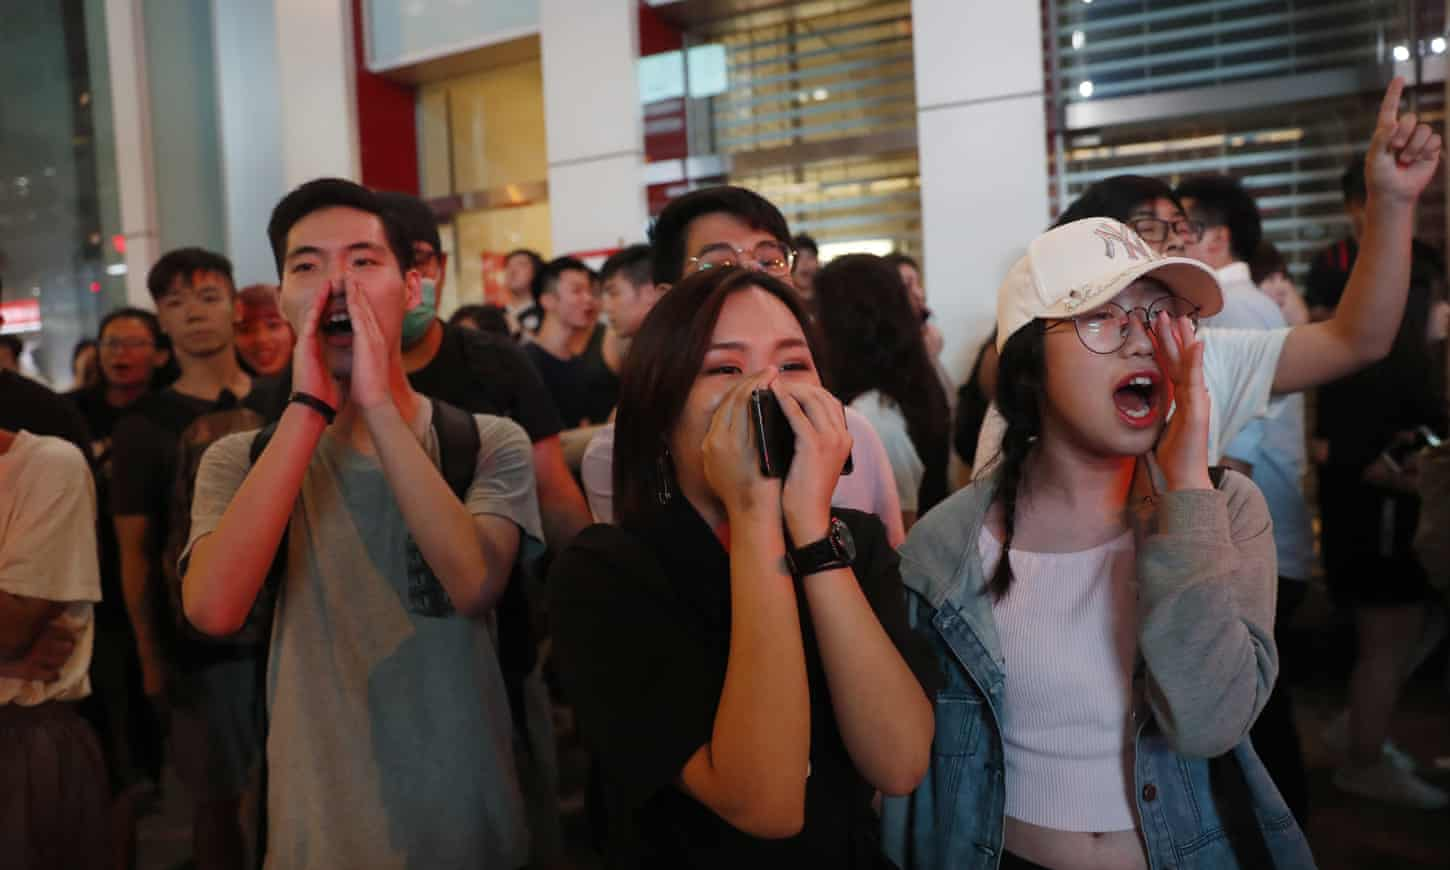 Hong Kong's dilemma: fight or resist peacefully